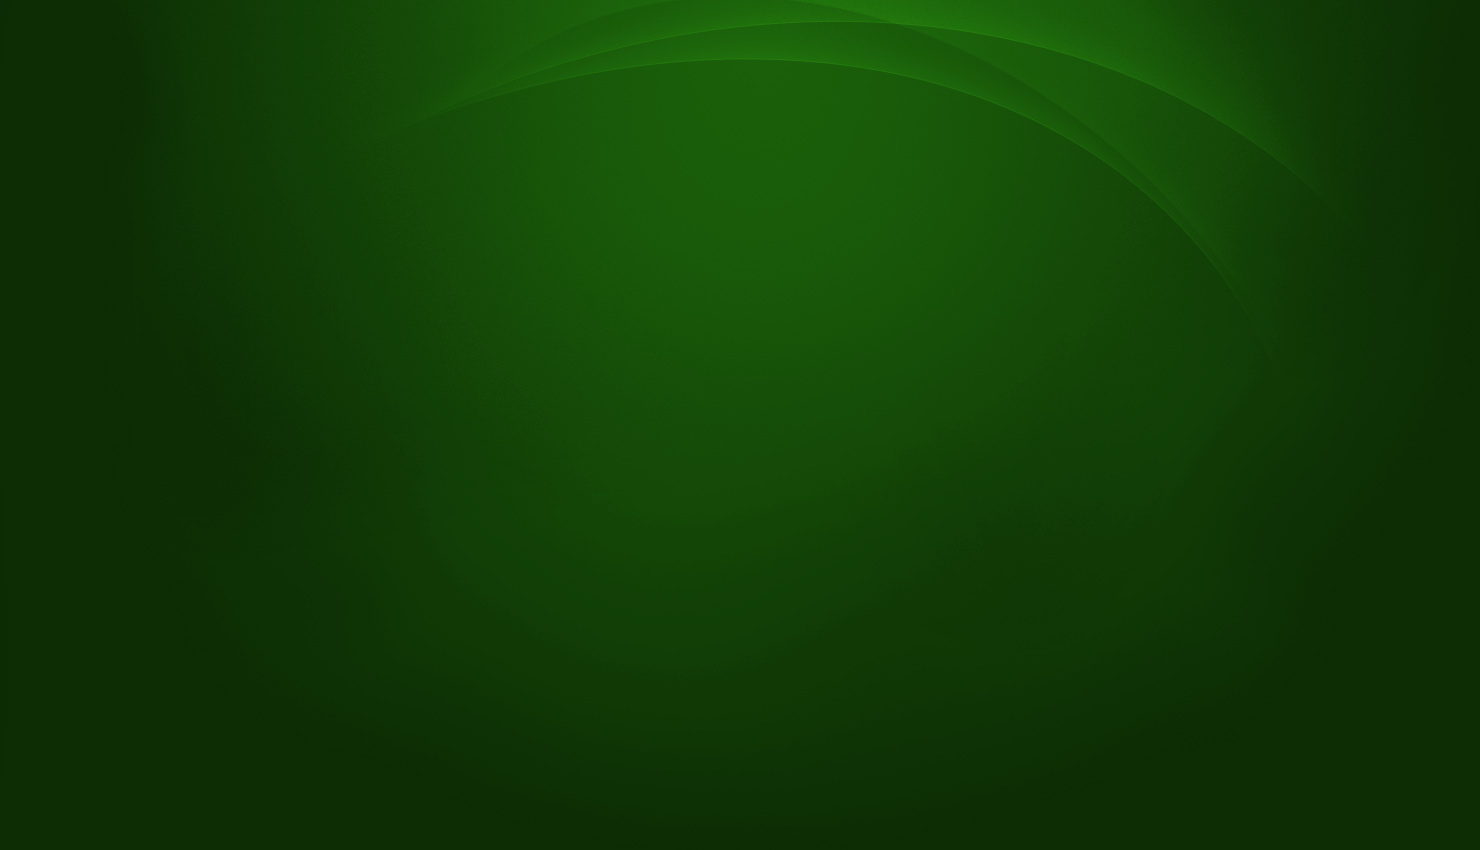 Photo Collection Professional Green Background Images